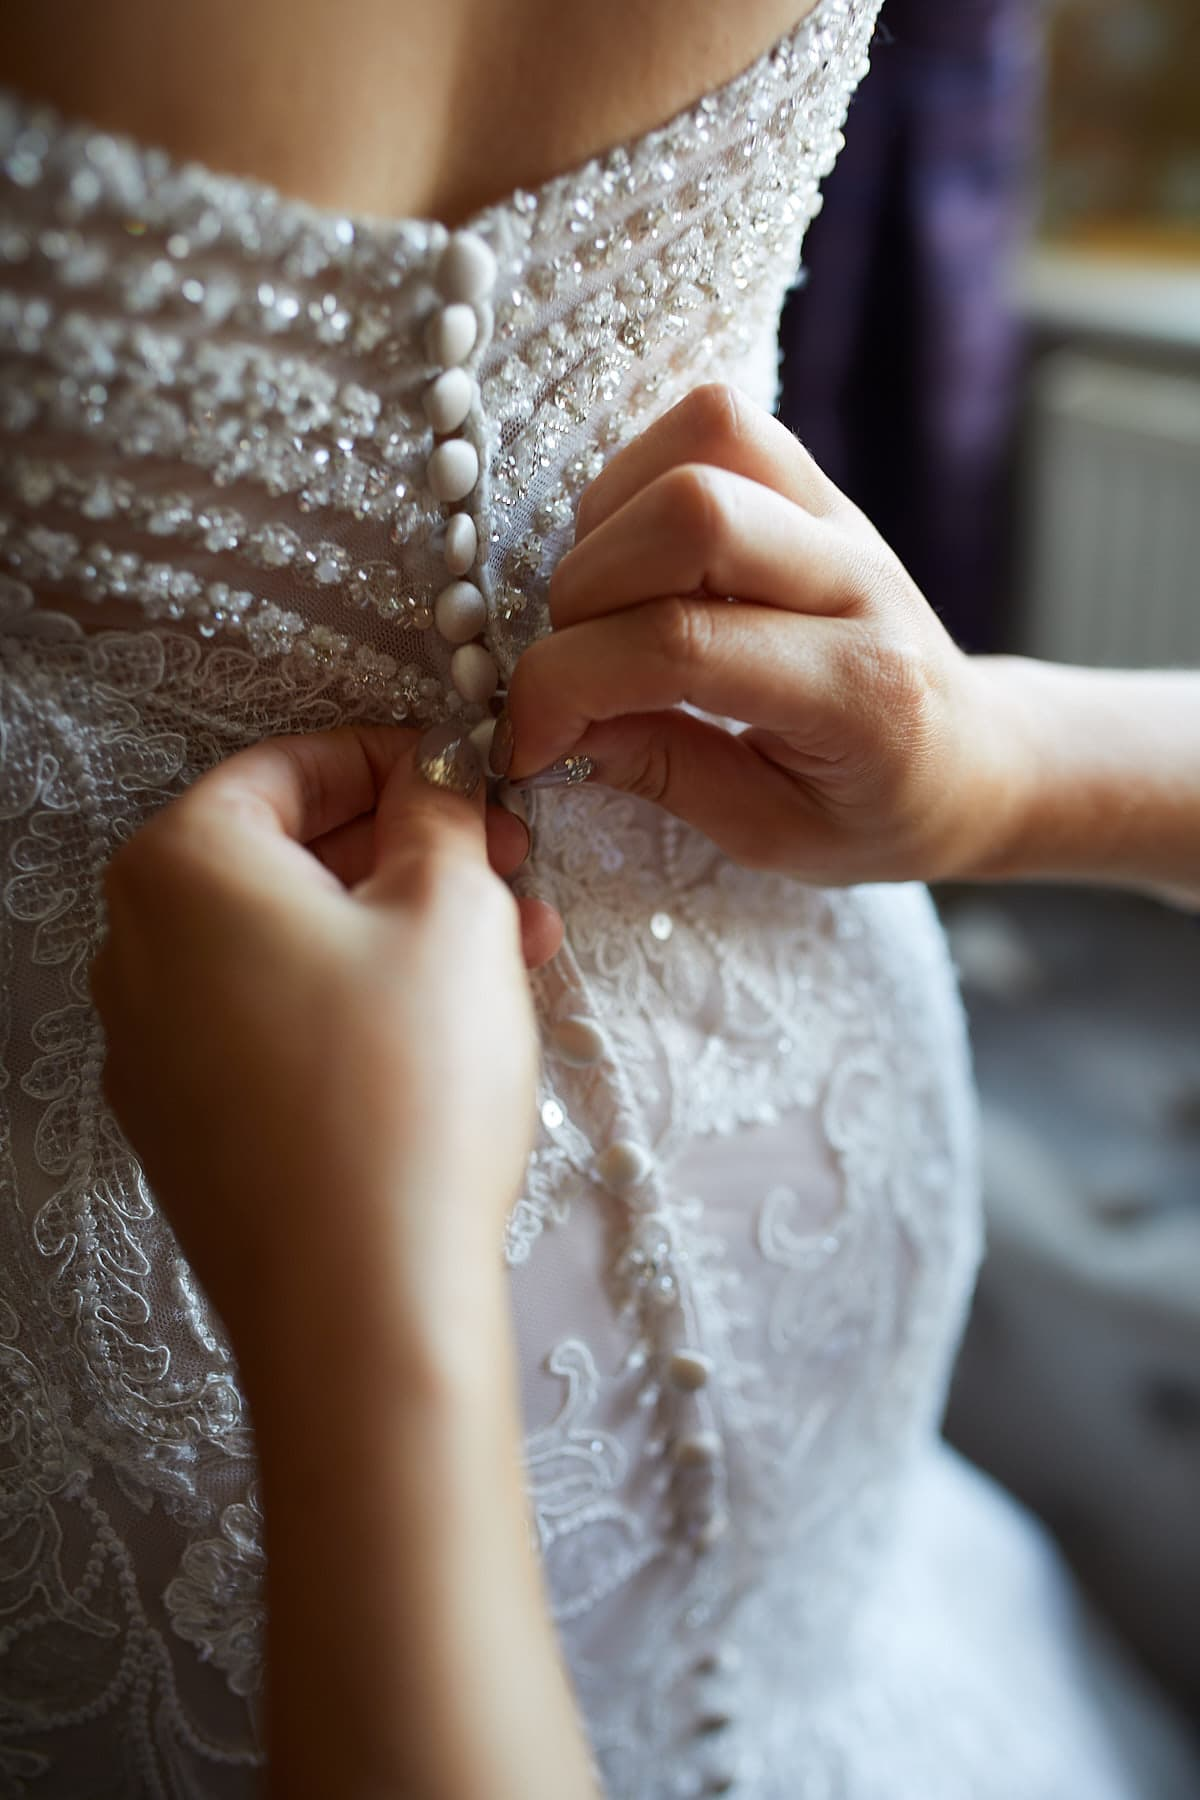 A mother fixes the buttons on her daughters dress during her wedding morning.